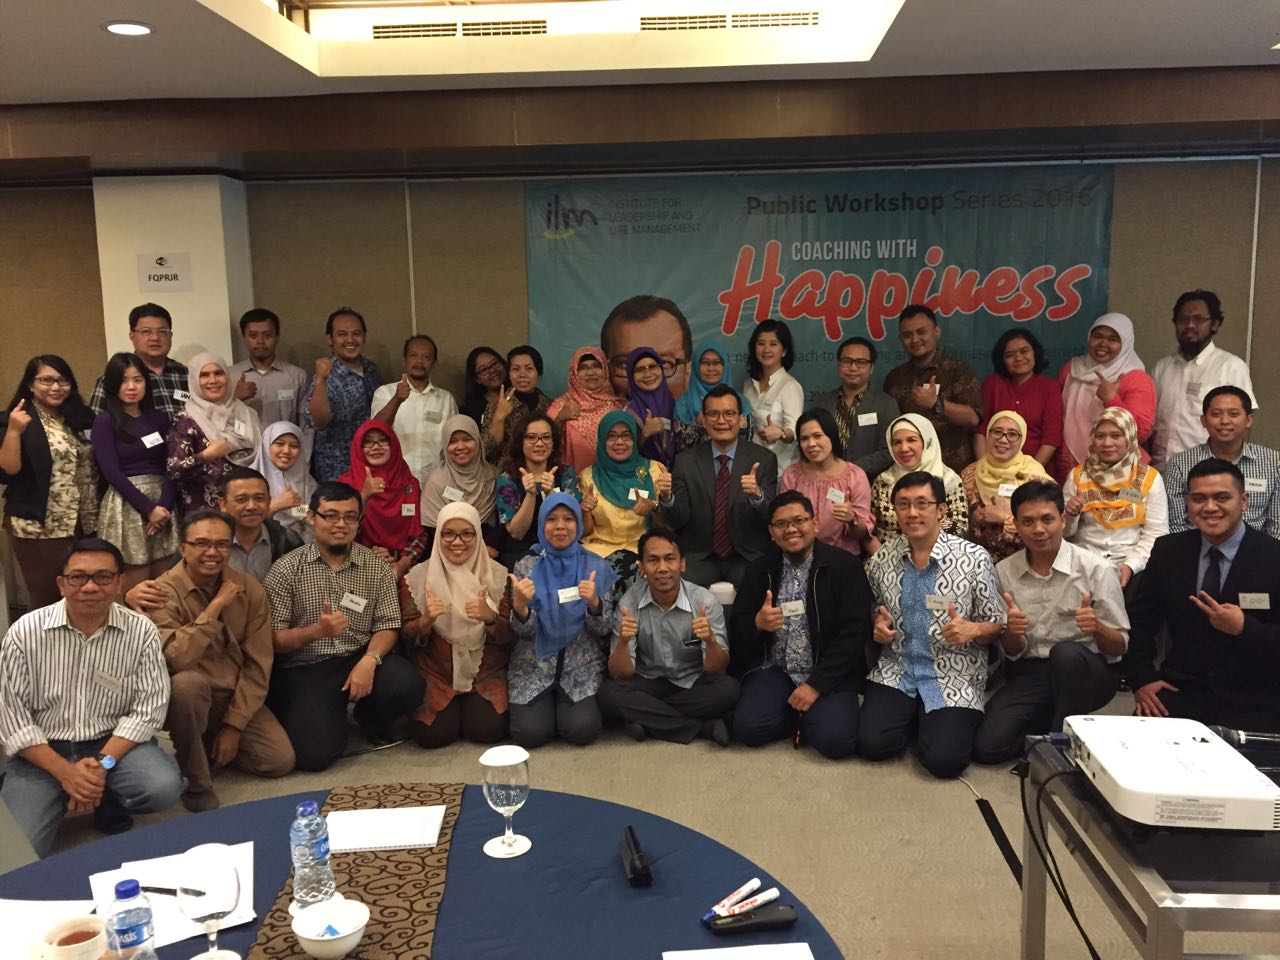 Foto bersama perserta workshop Coaching with Happiness